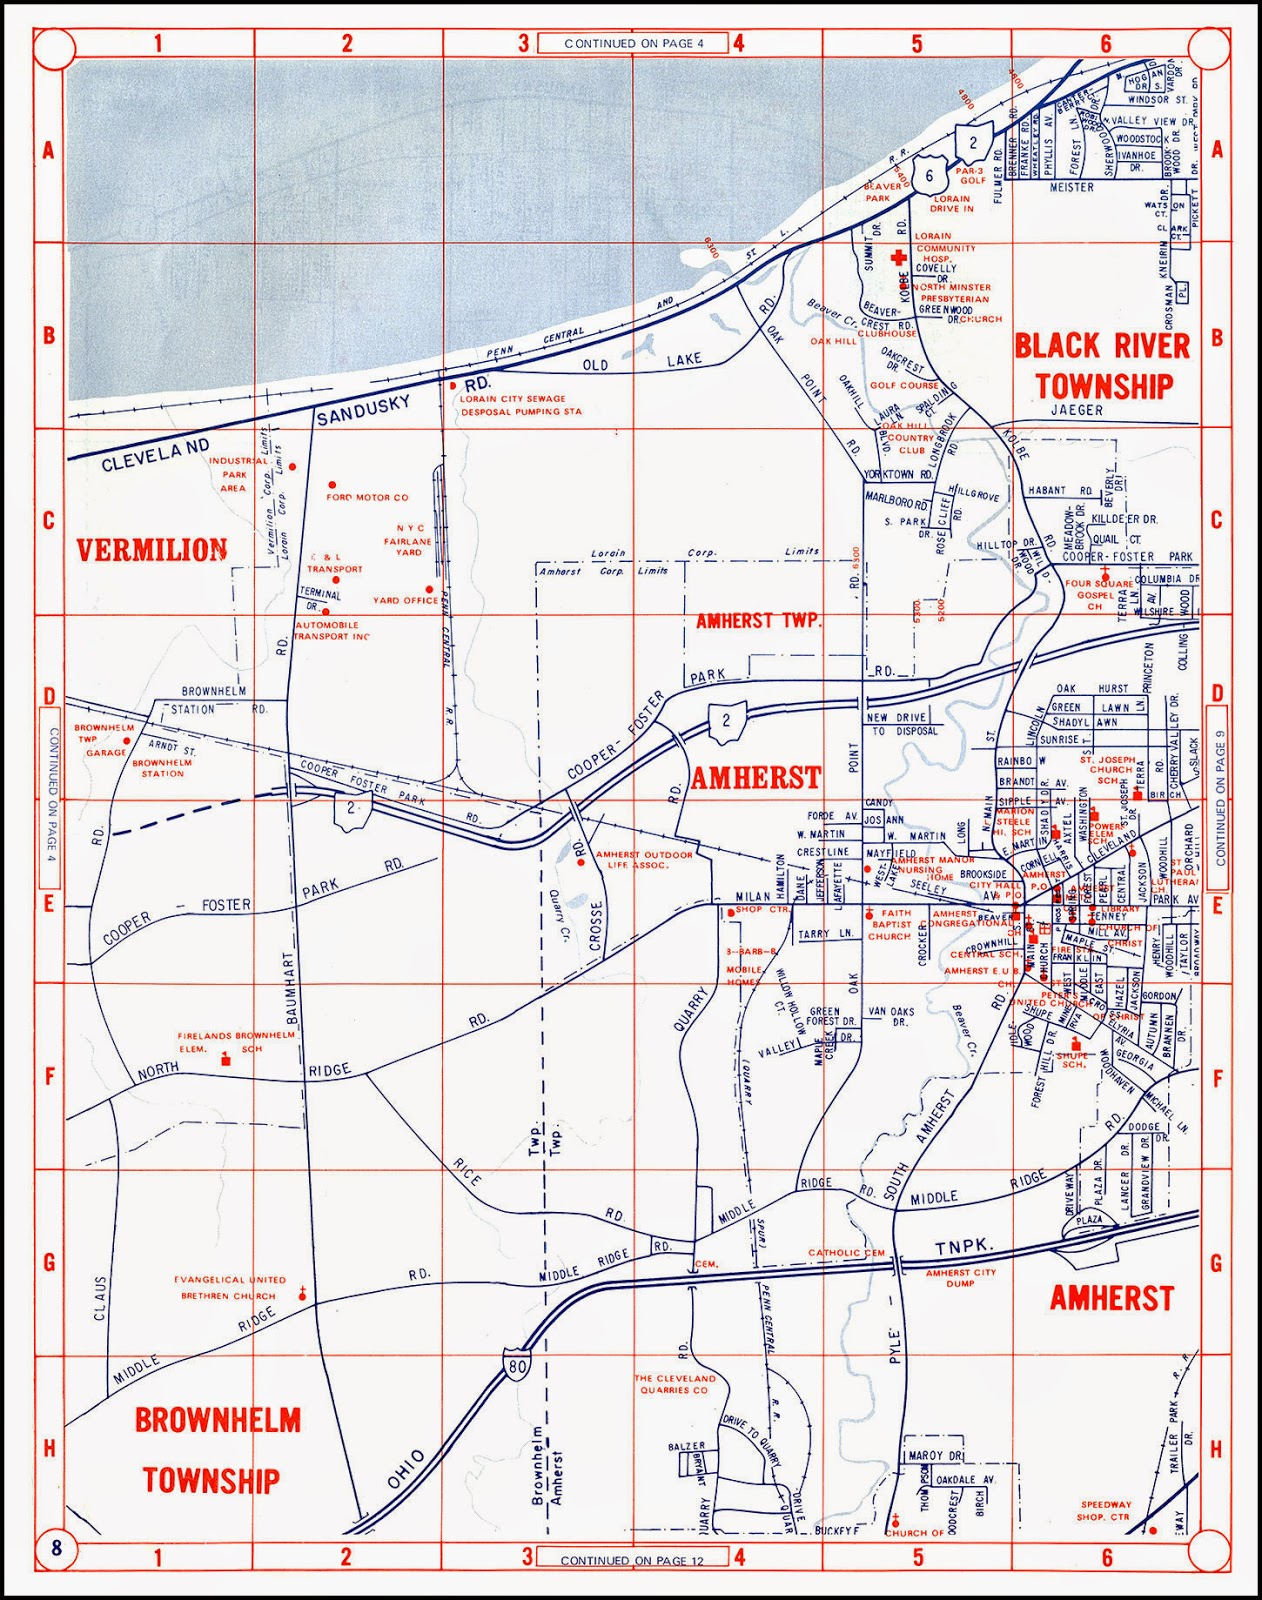 Bradys Lorain County Nostalgia Late 1960s Champion Map of W